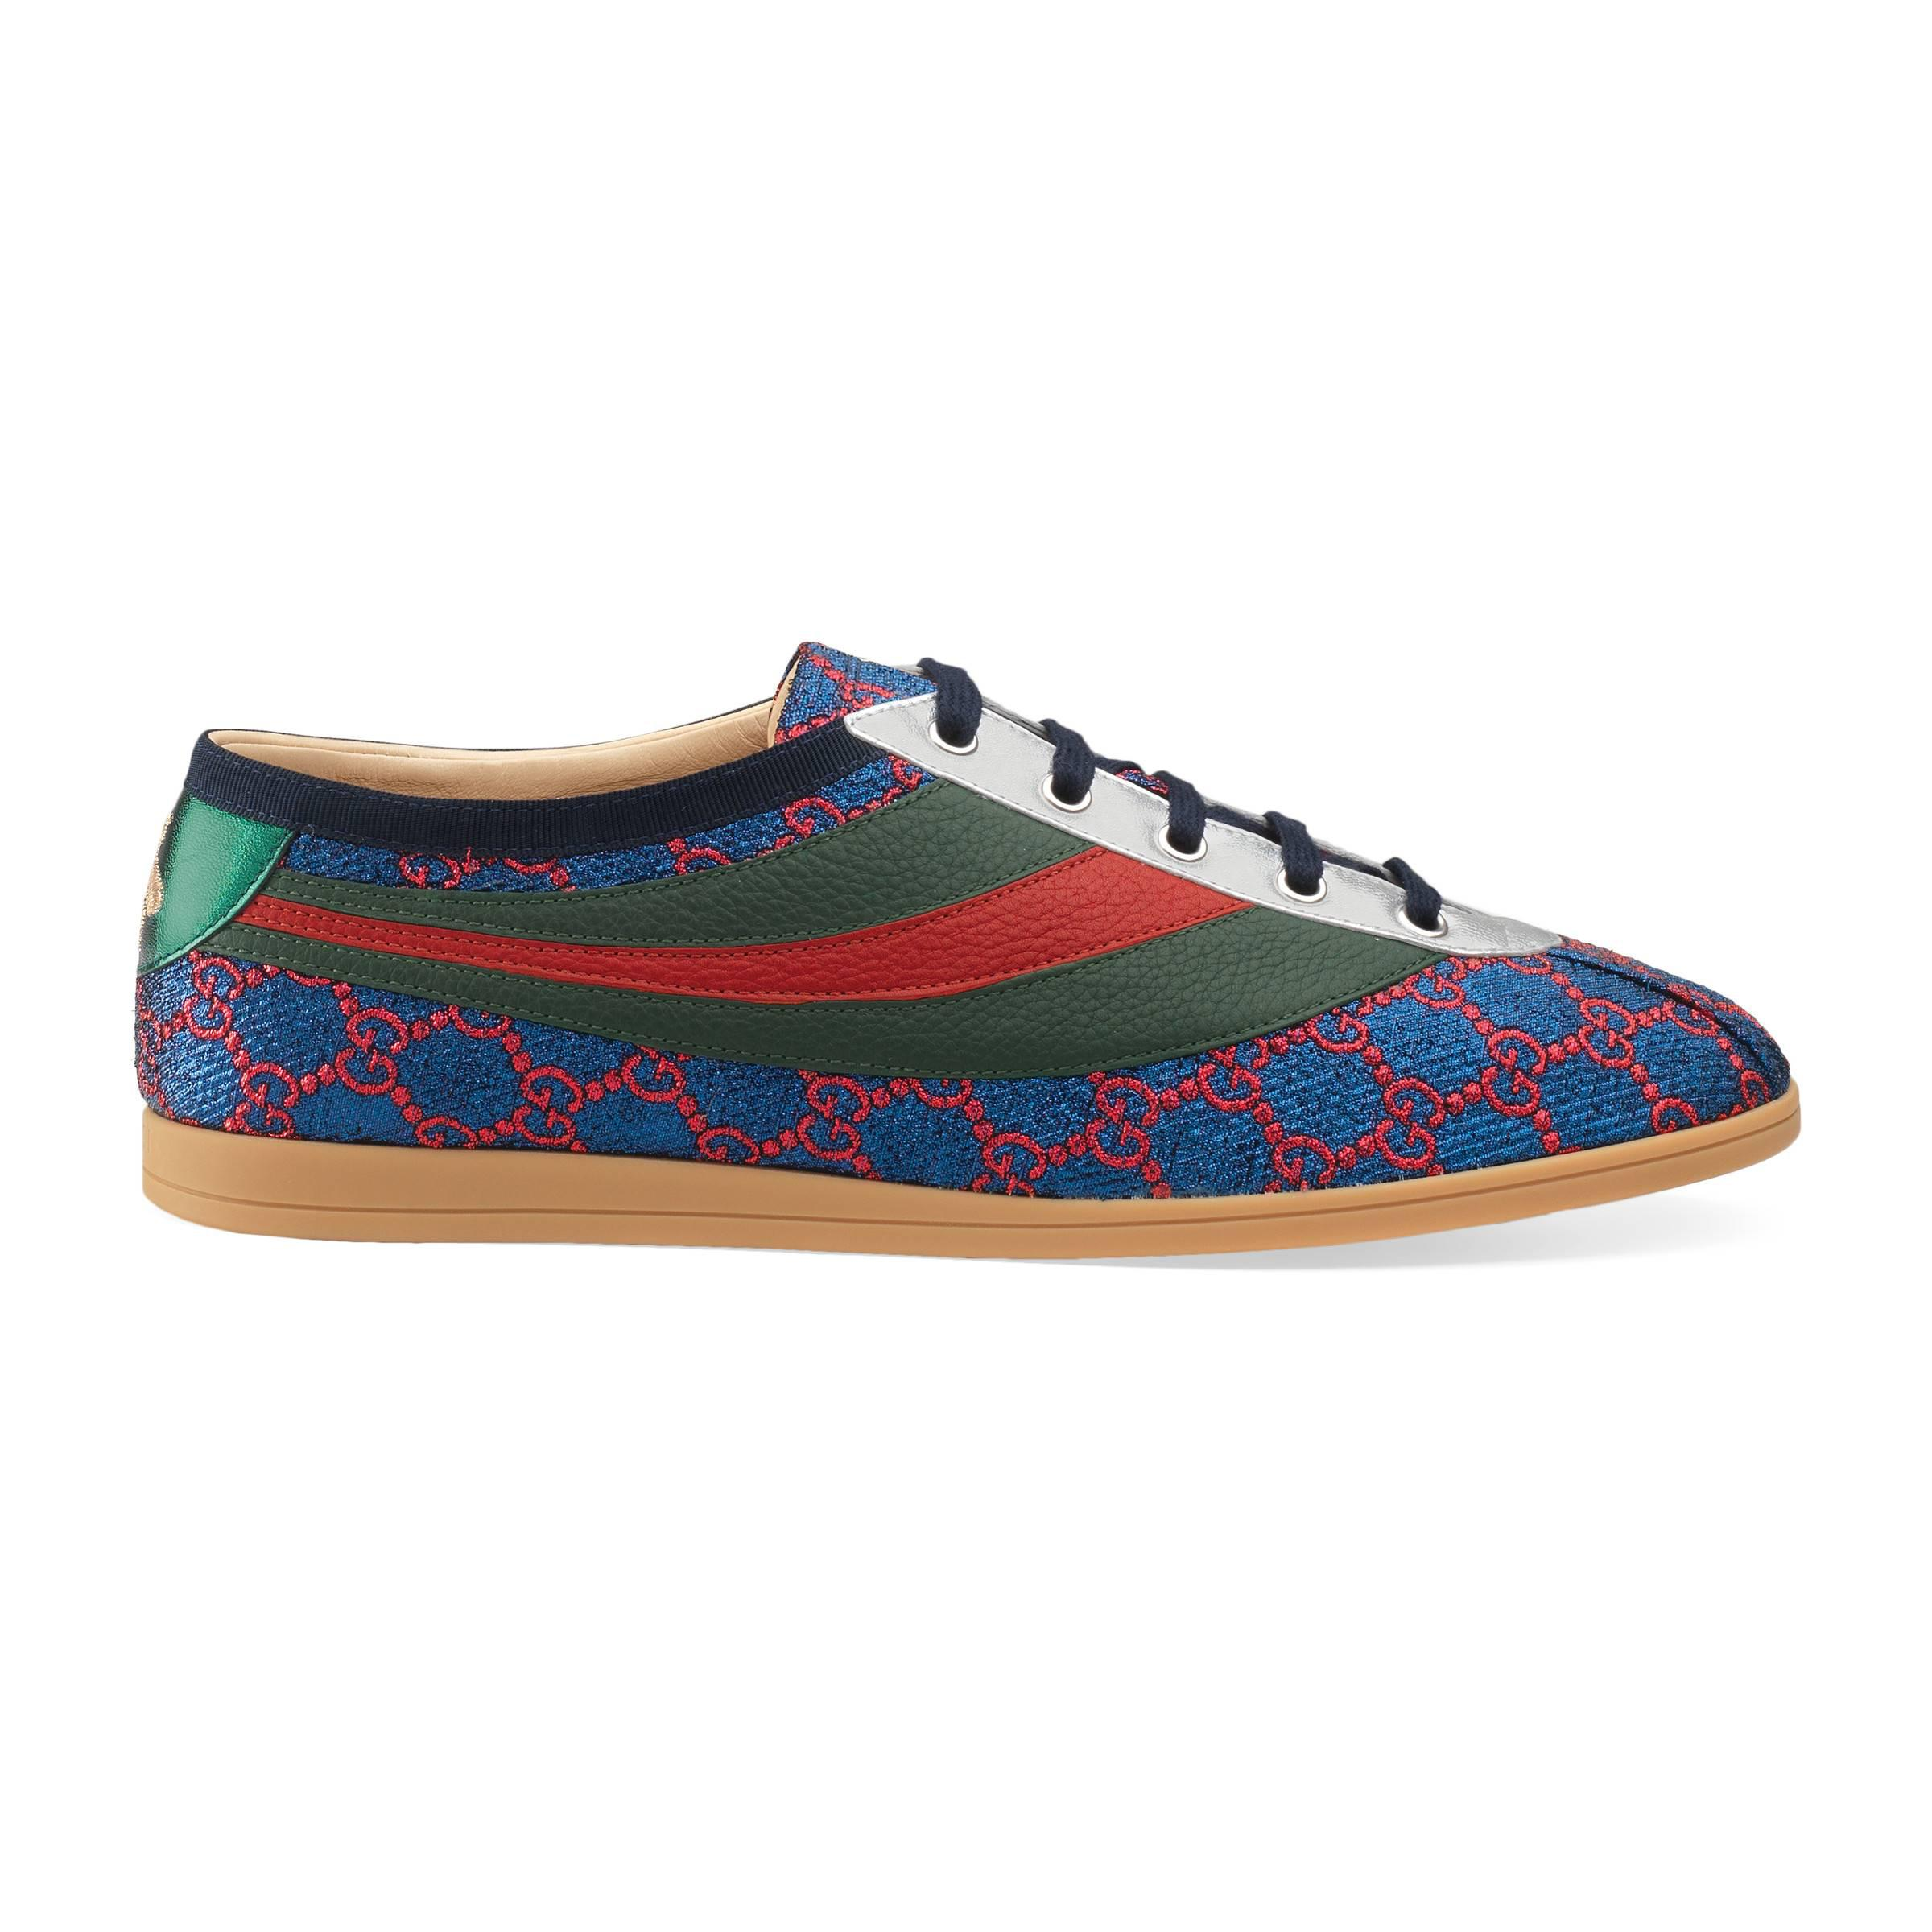 0f2f31f4402 Gucci Falacer Lurex Gg Sneaker With Web in Blue for Men - Lyst